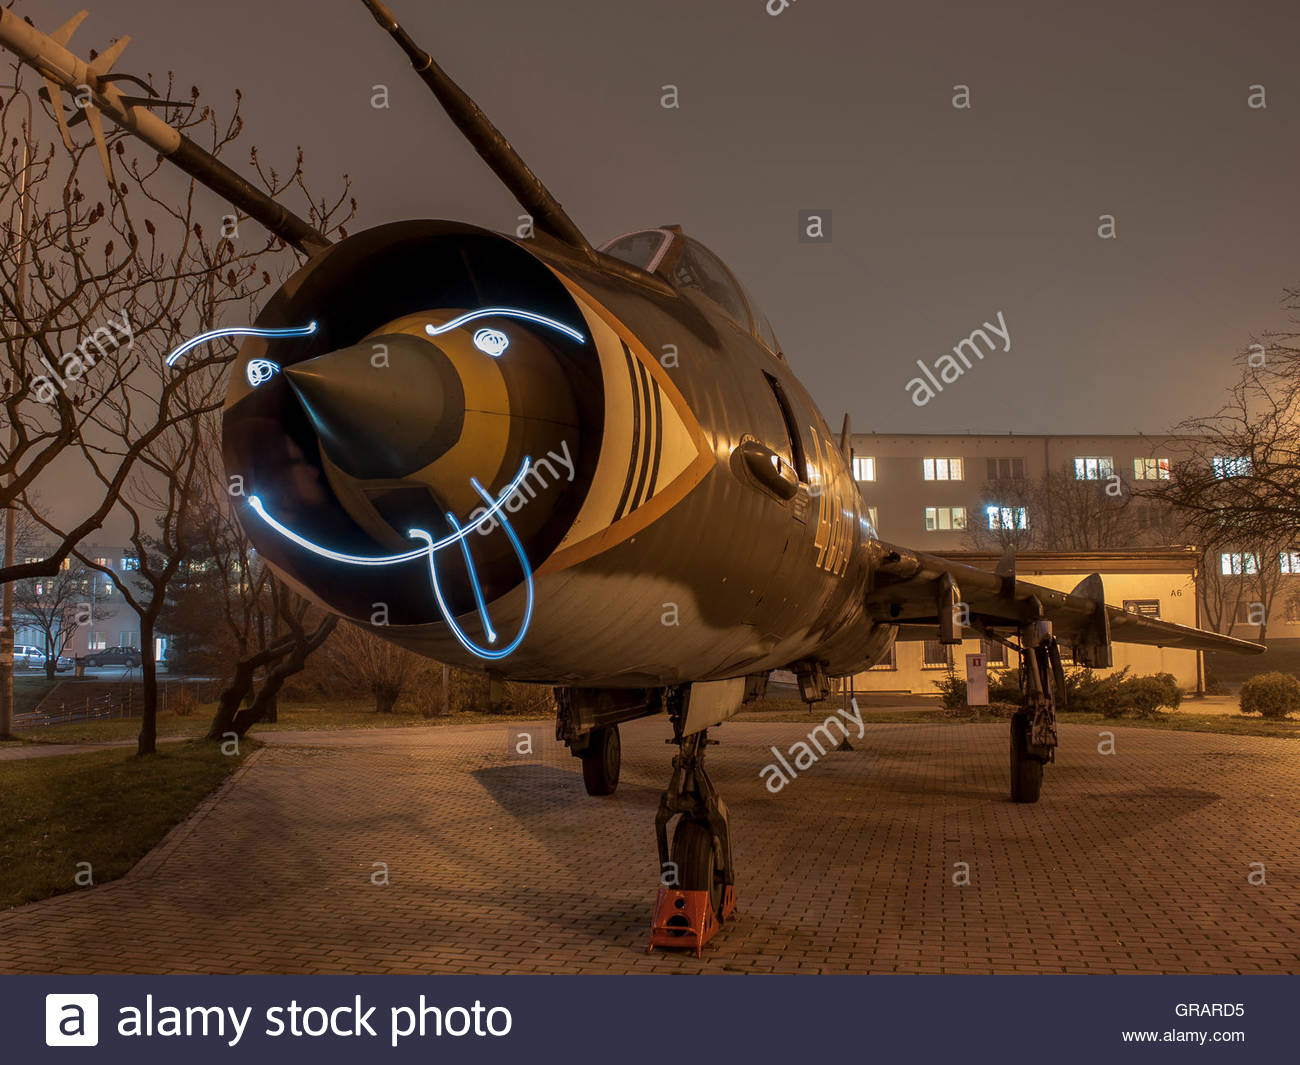 Light Painting On Military Airplane Against Sky - Stock Image